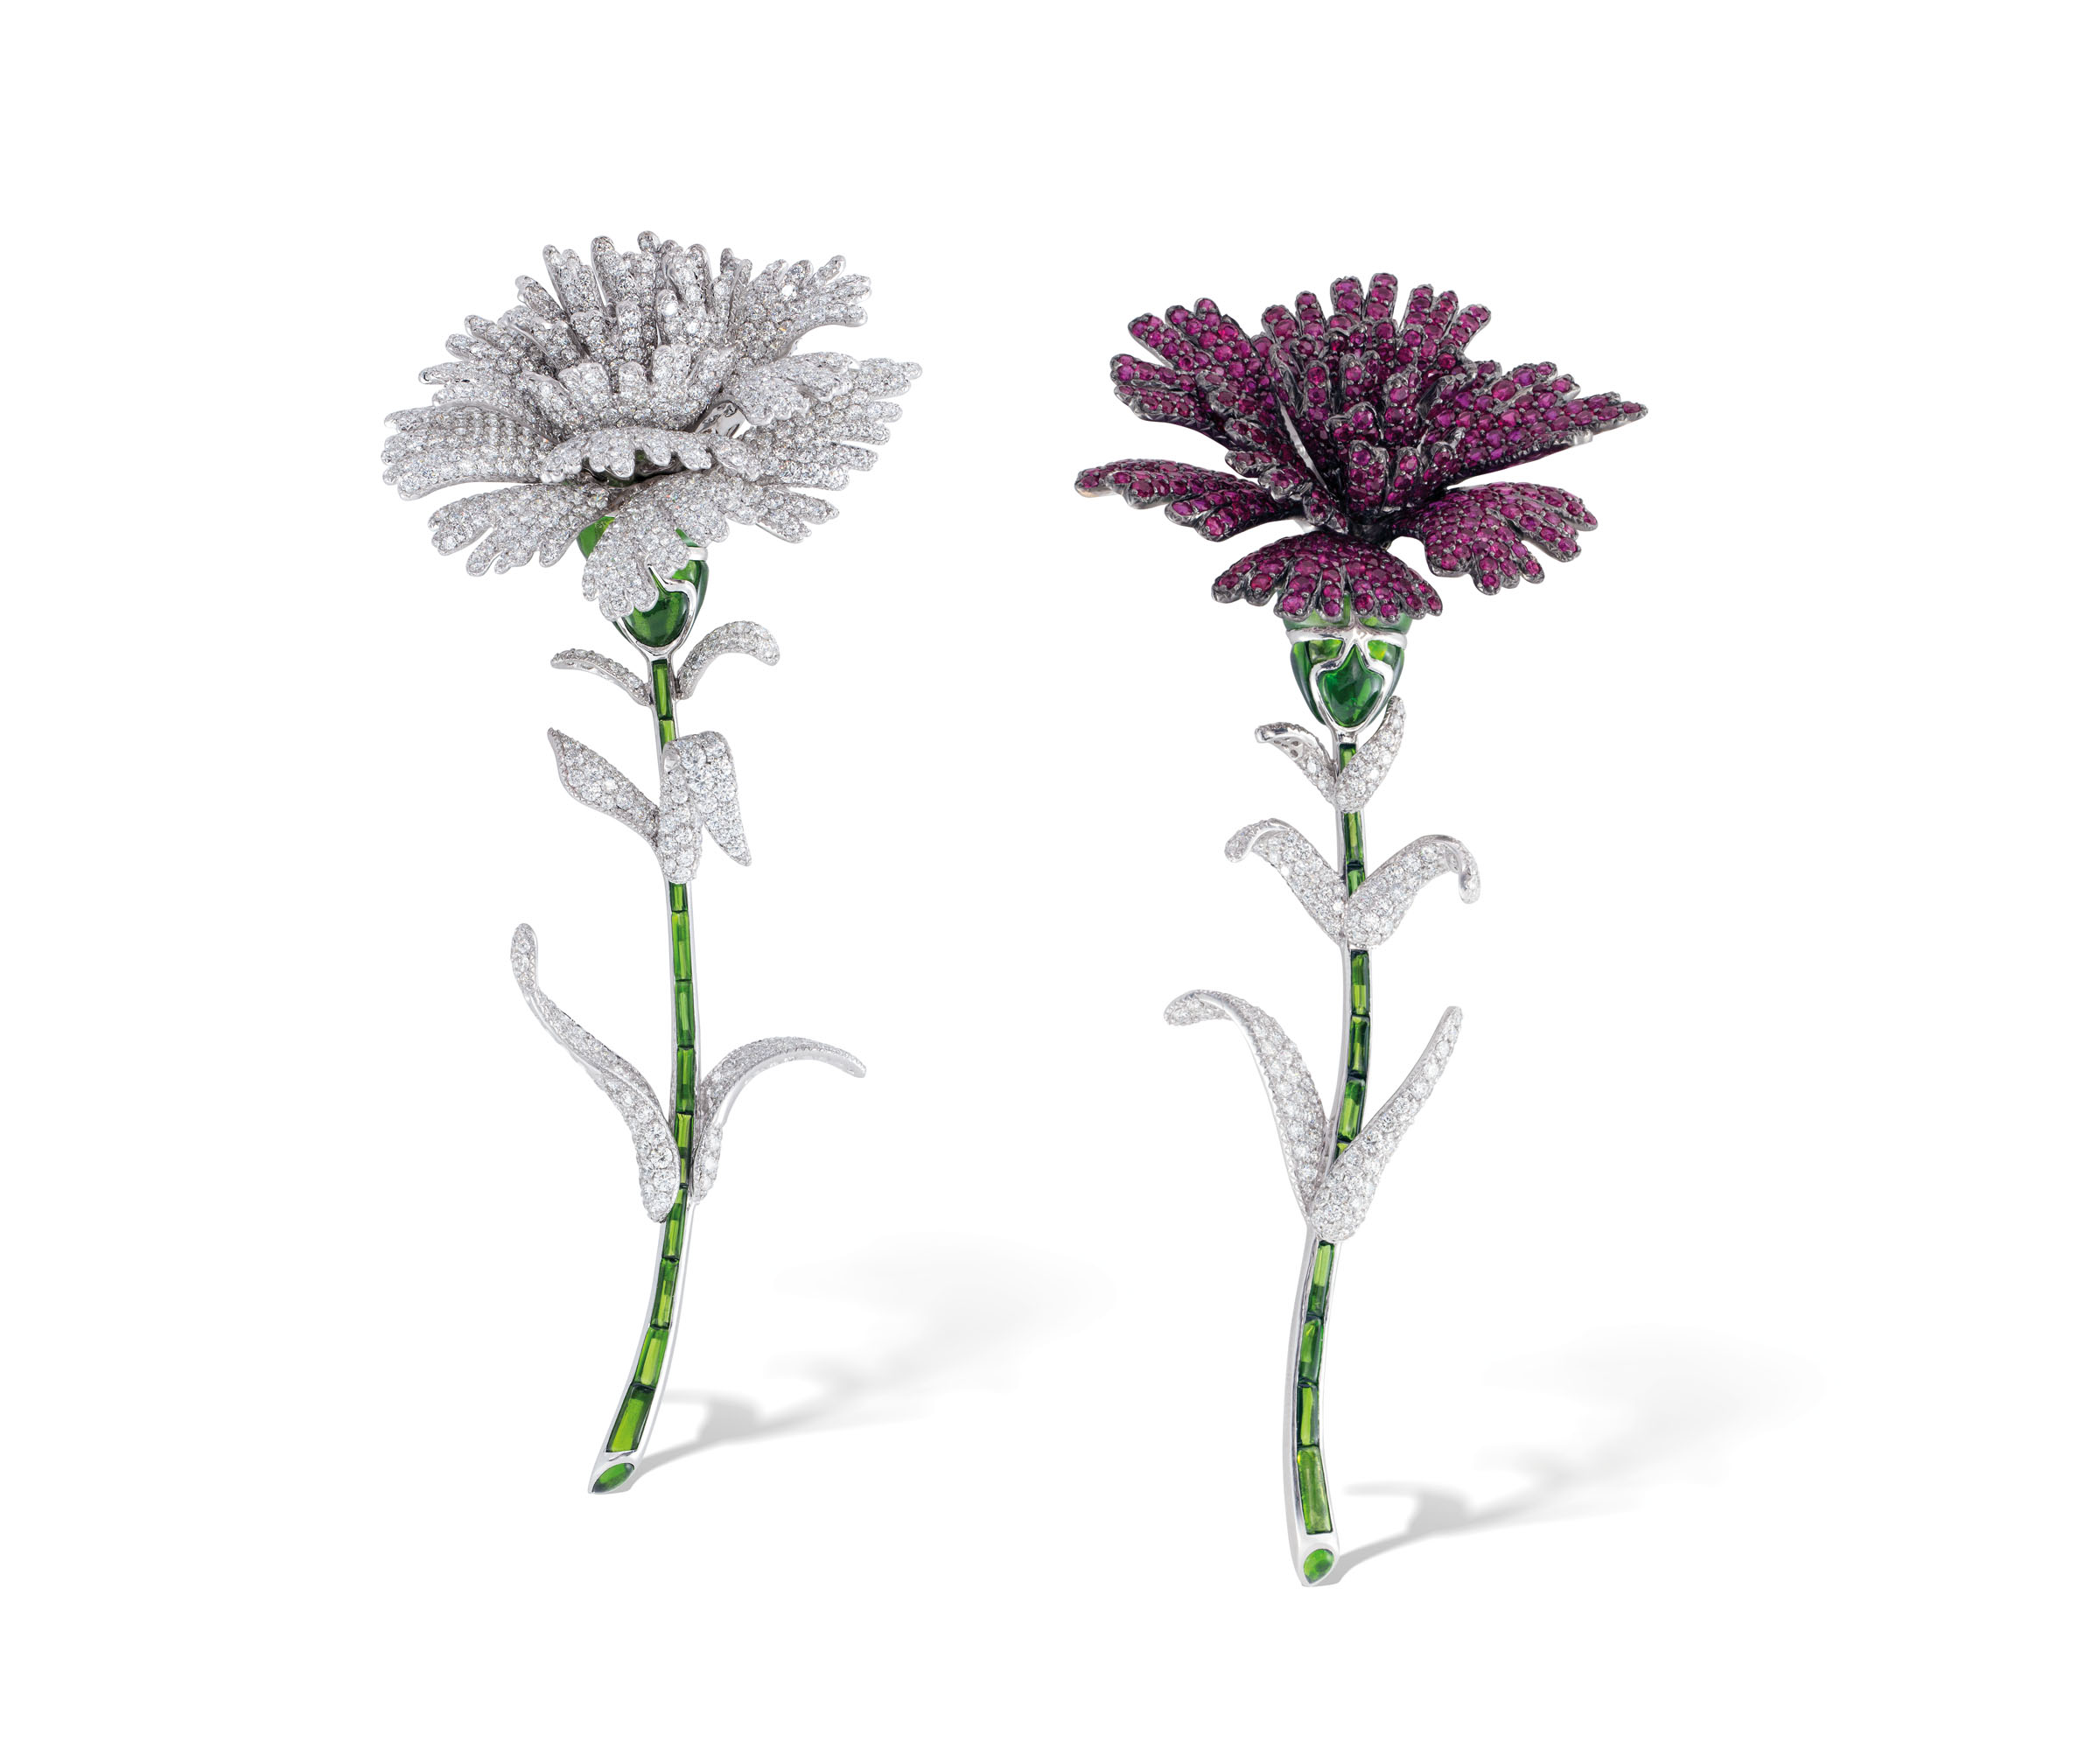 Diamond, spinel and green tourmaline Carnation brooches, Michele Della Valle. SizeDimensions 12.0 and 12.5 cm. Estimate CHF 50,000-70,000. Offered in Magnificent Jewels on 10 November 2020 at Christie's in Geneva